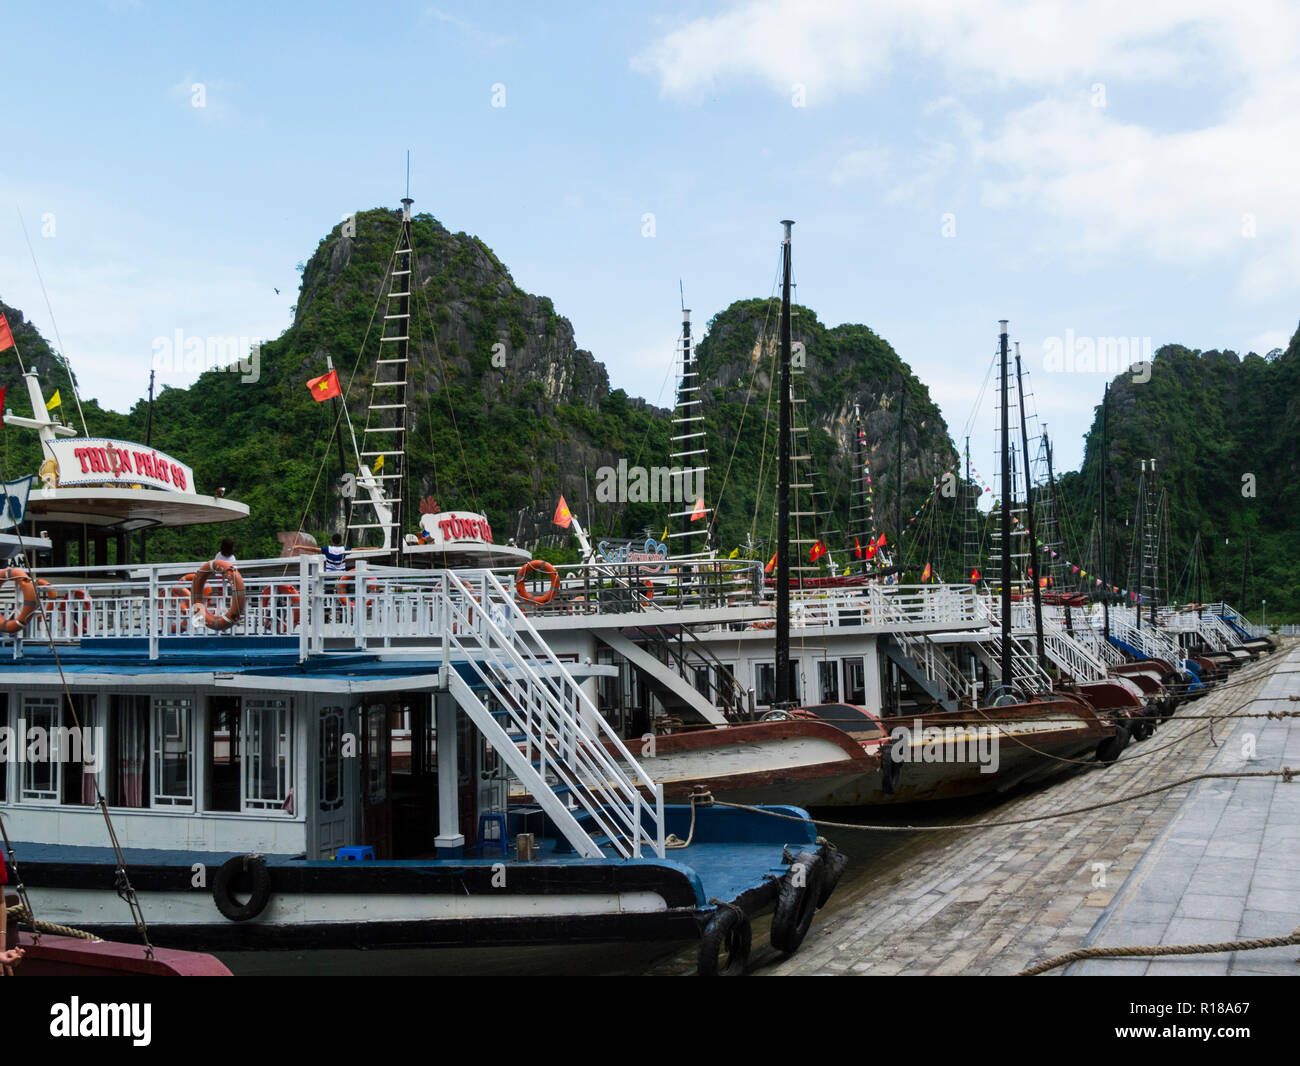 Junk Cruise boats moored for tourists to visit cave in limestone island peaks Halong Bay South China Sea Vietnam Asia - Stock Image